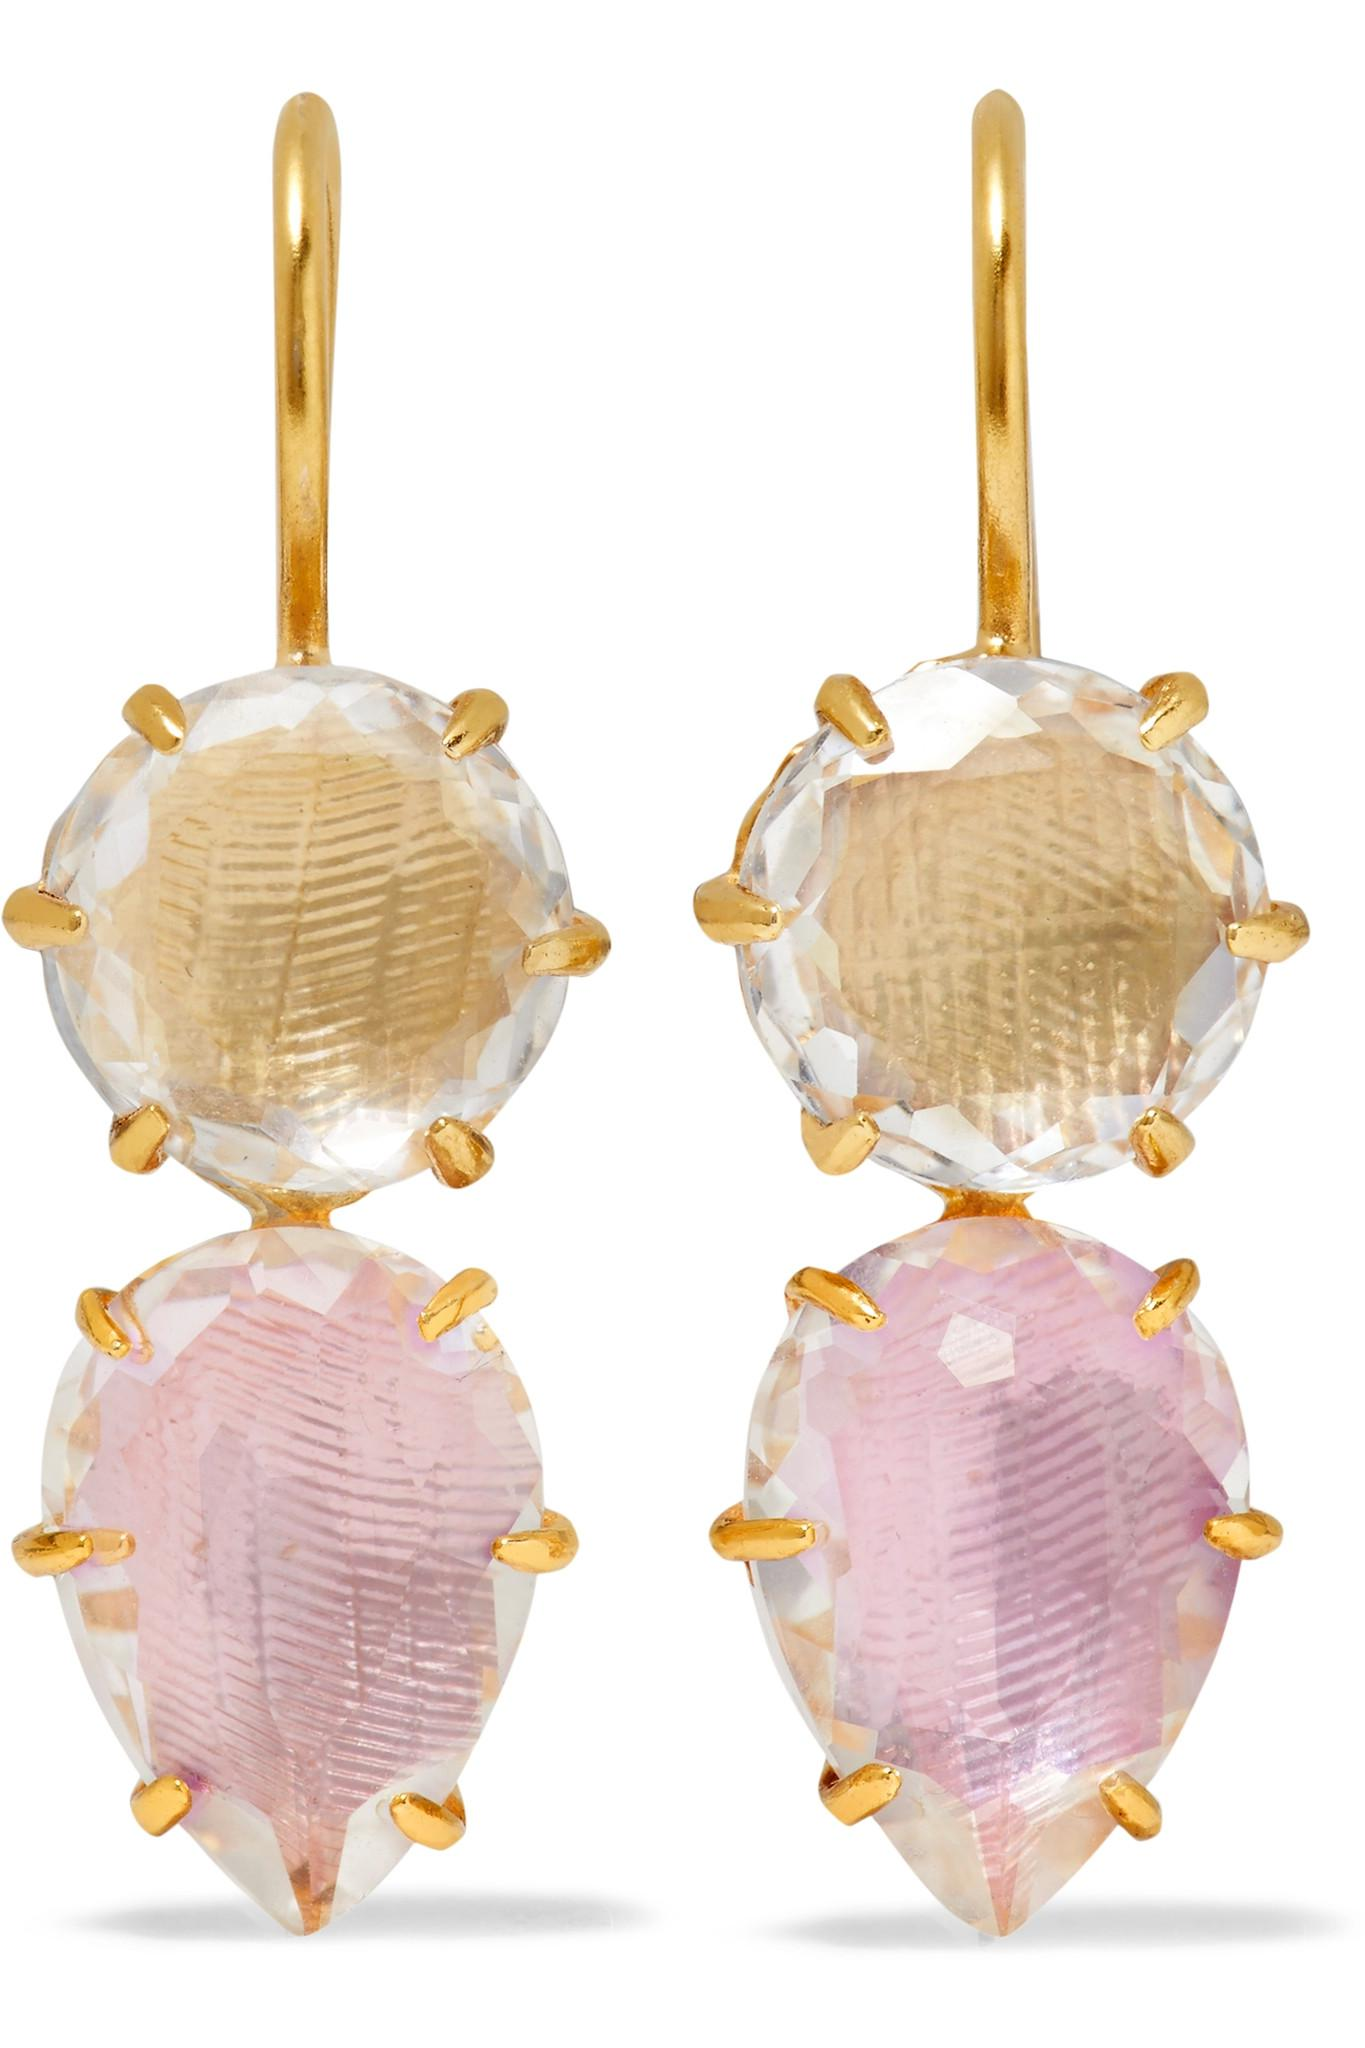 Larkspur & Hawk 18-karat Gold-dipped Quartz Earrings WCJuAJ